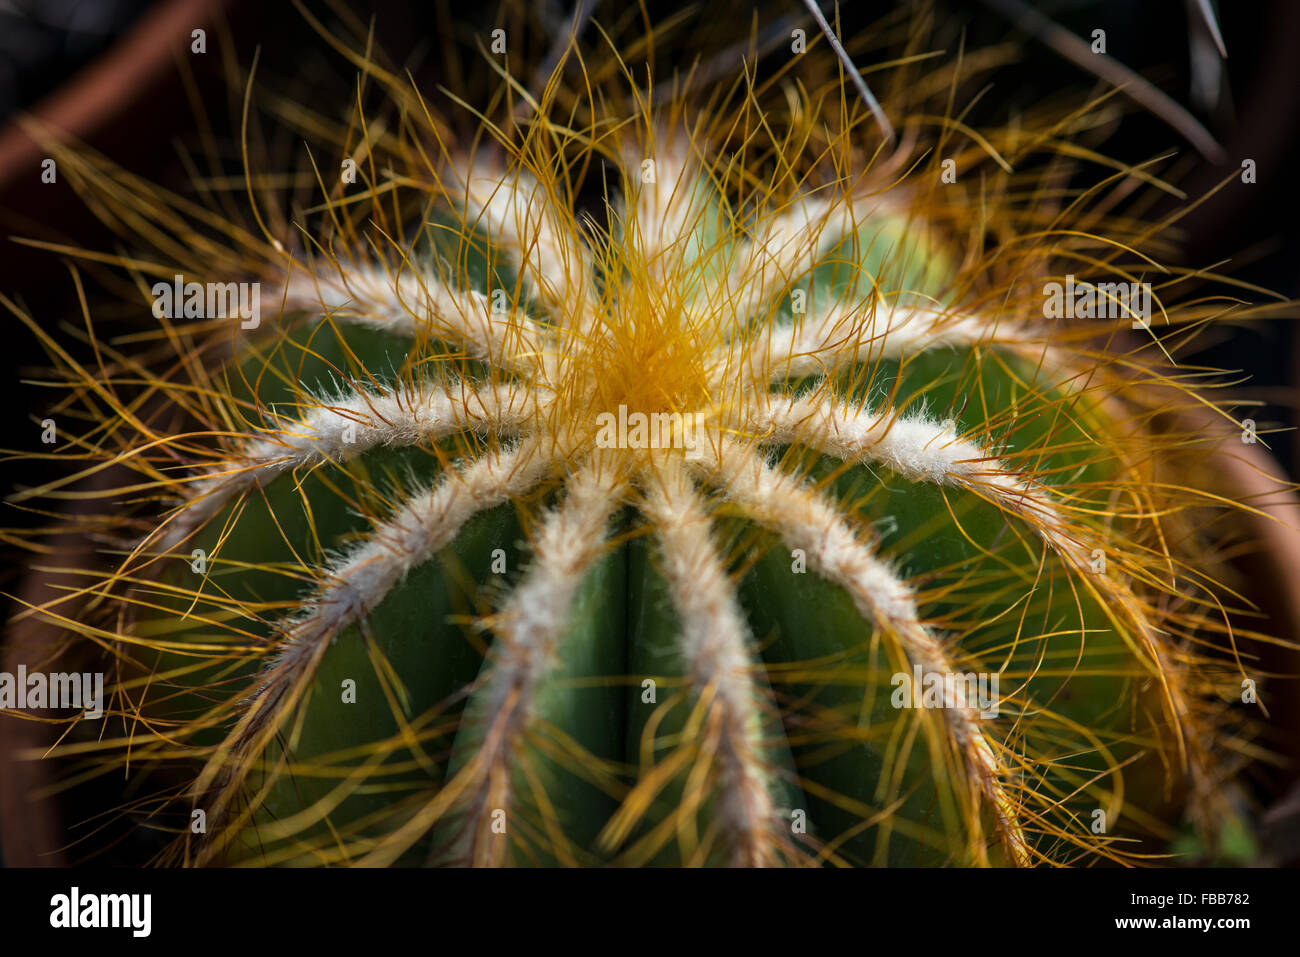 Close up image of the top of a barrel cactus (variety unknown) showing spines and fuzz - Stock Image